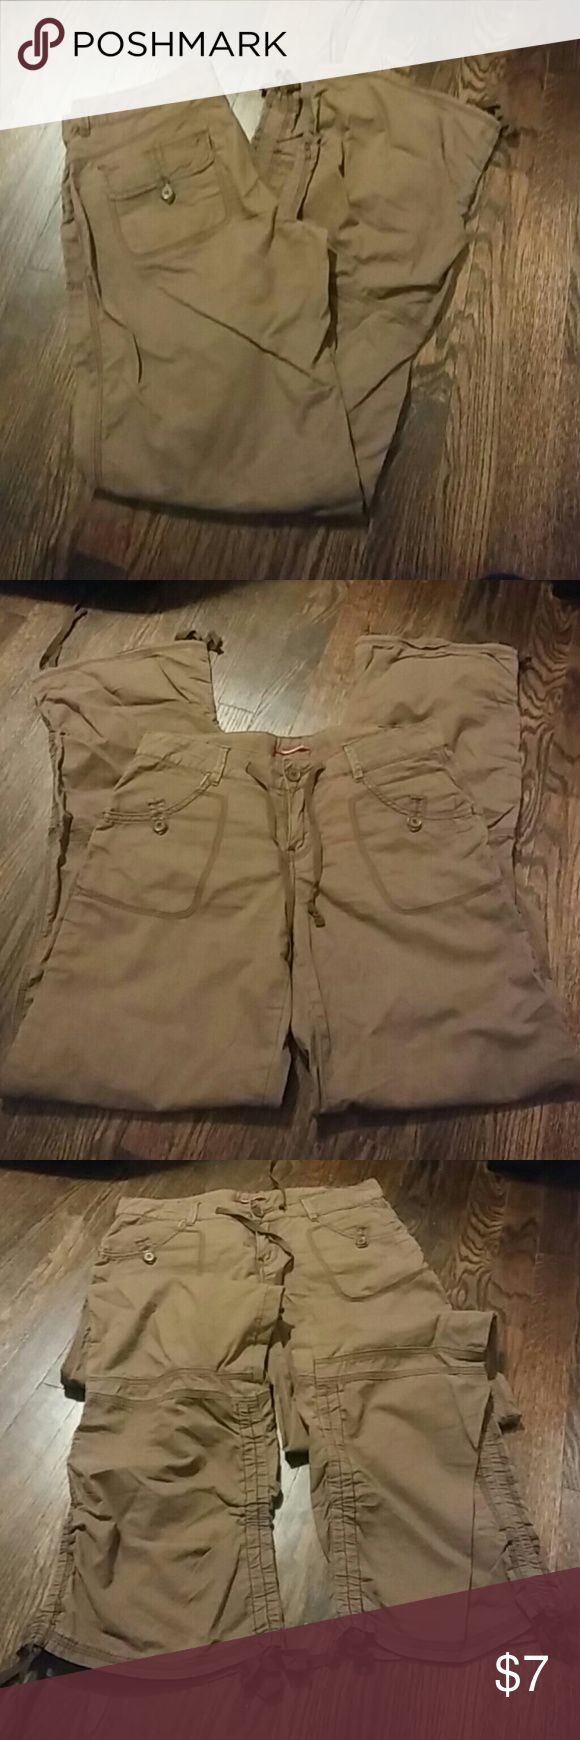 Casually comfy brown pants Cargo style with ties on the bottom of each leg to convert into capris. Comfy thinner material. UNIONBAY Pants